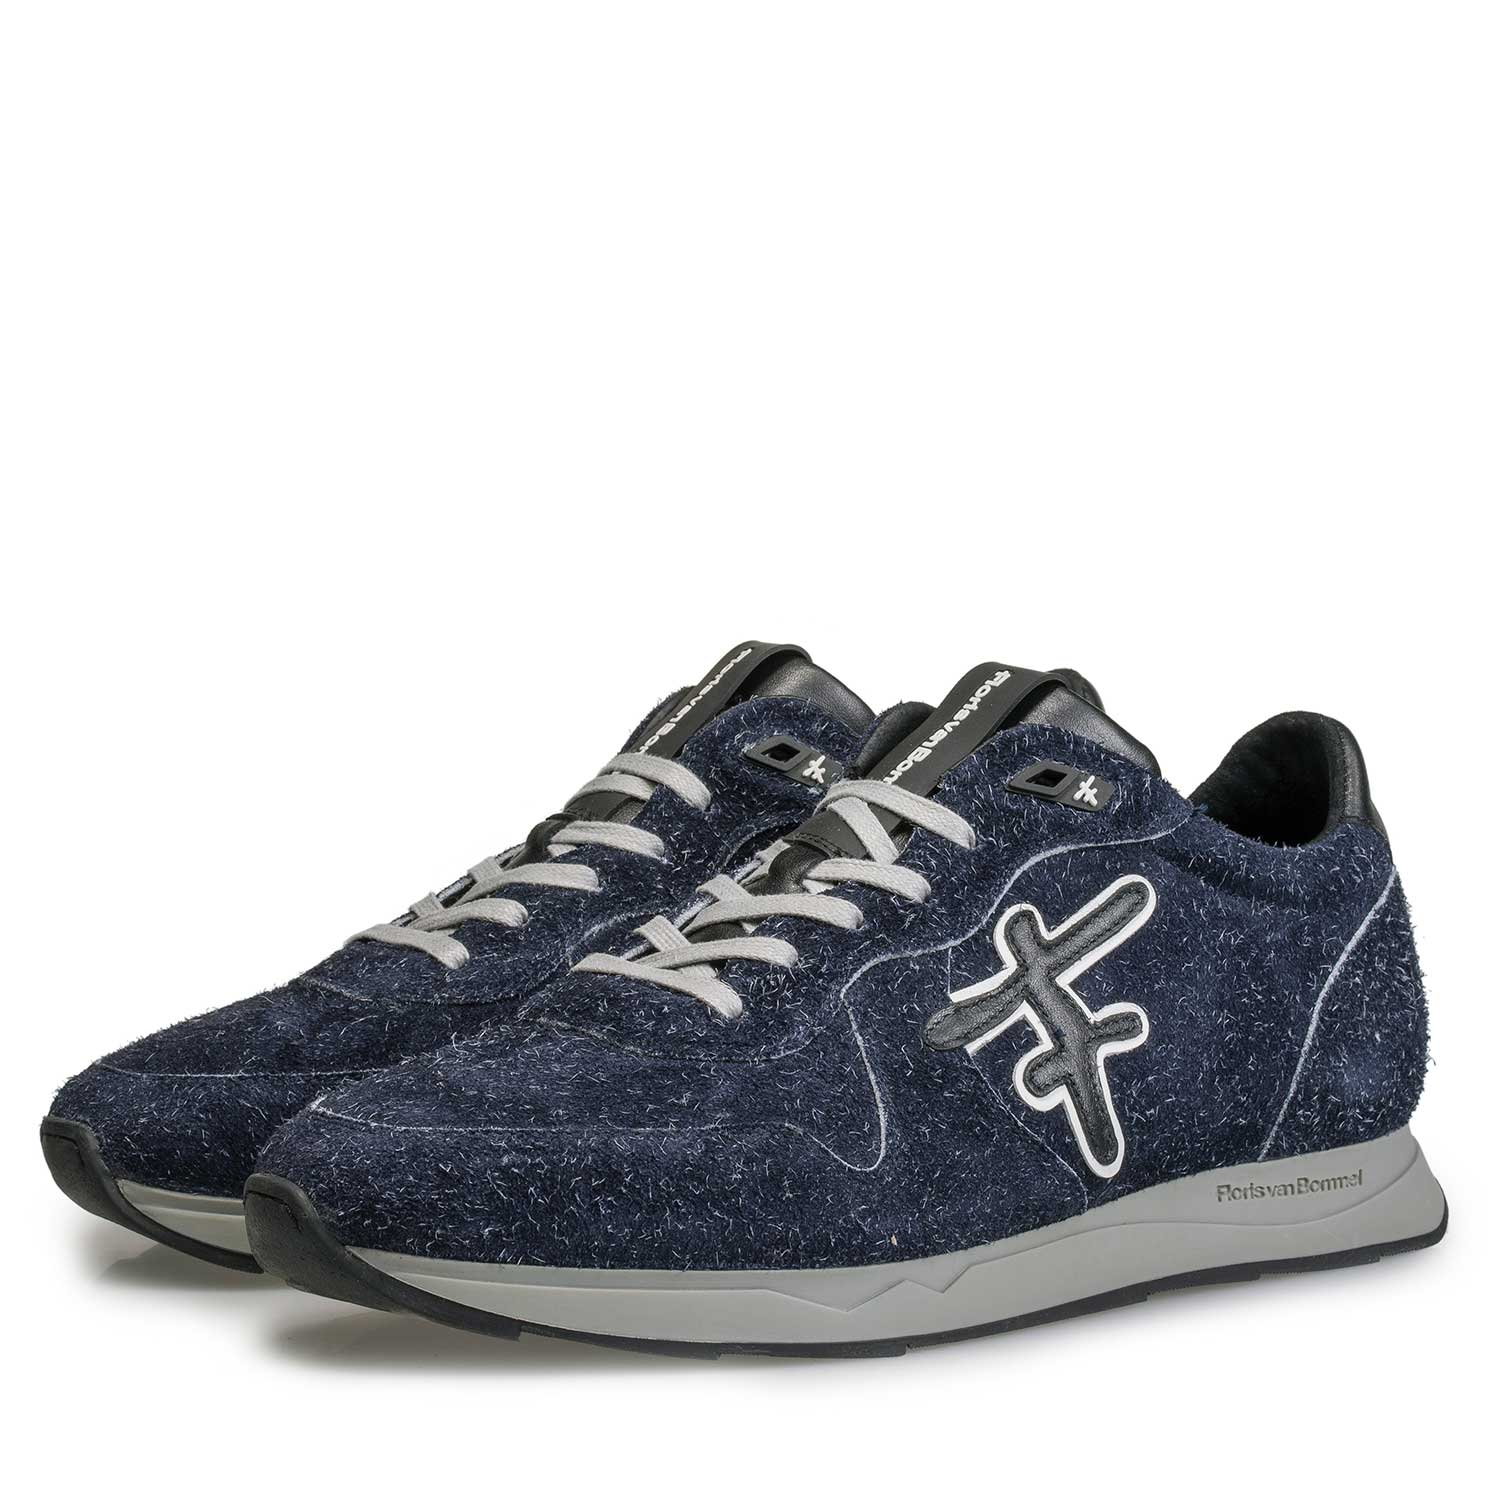 16226/09 - Blue Sneaker made of rough-haired suede leather